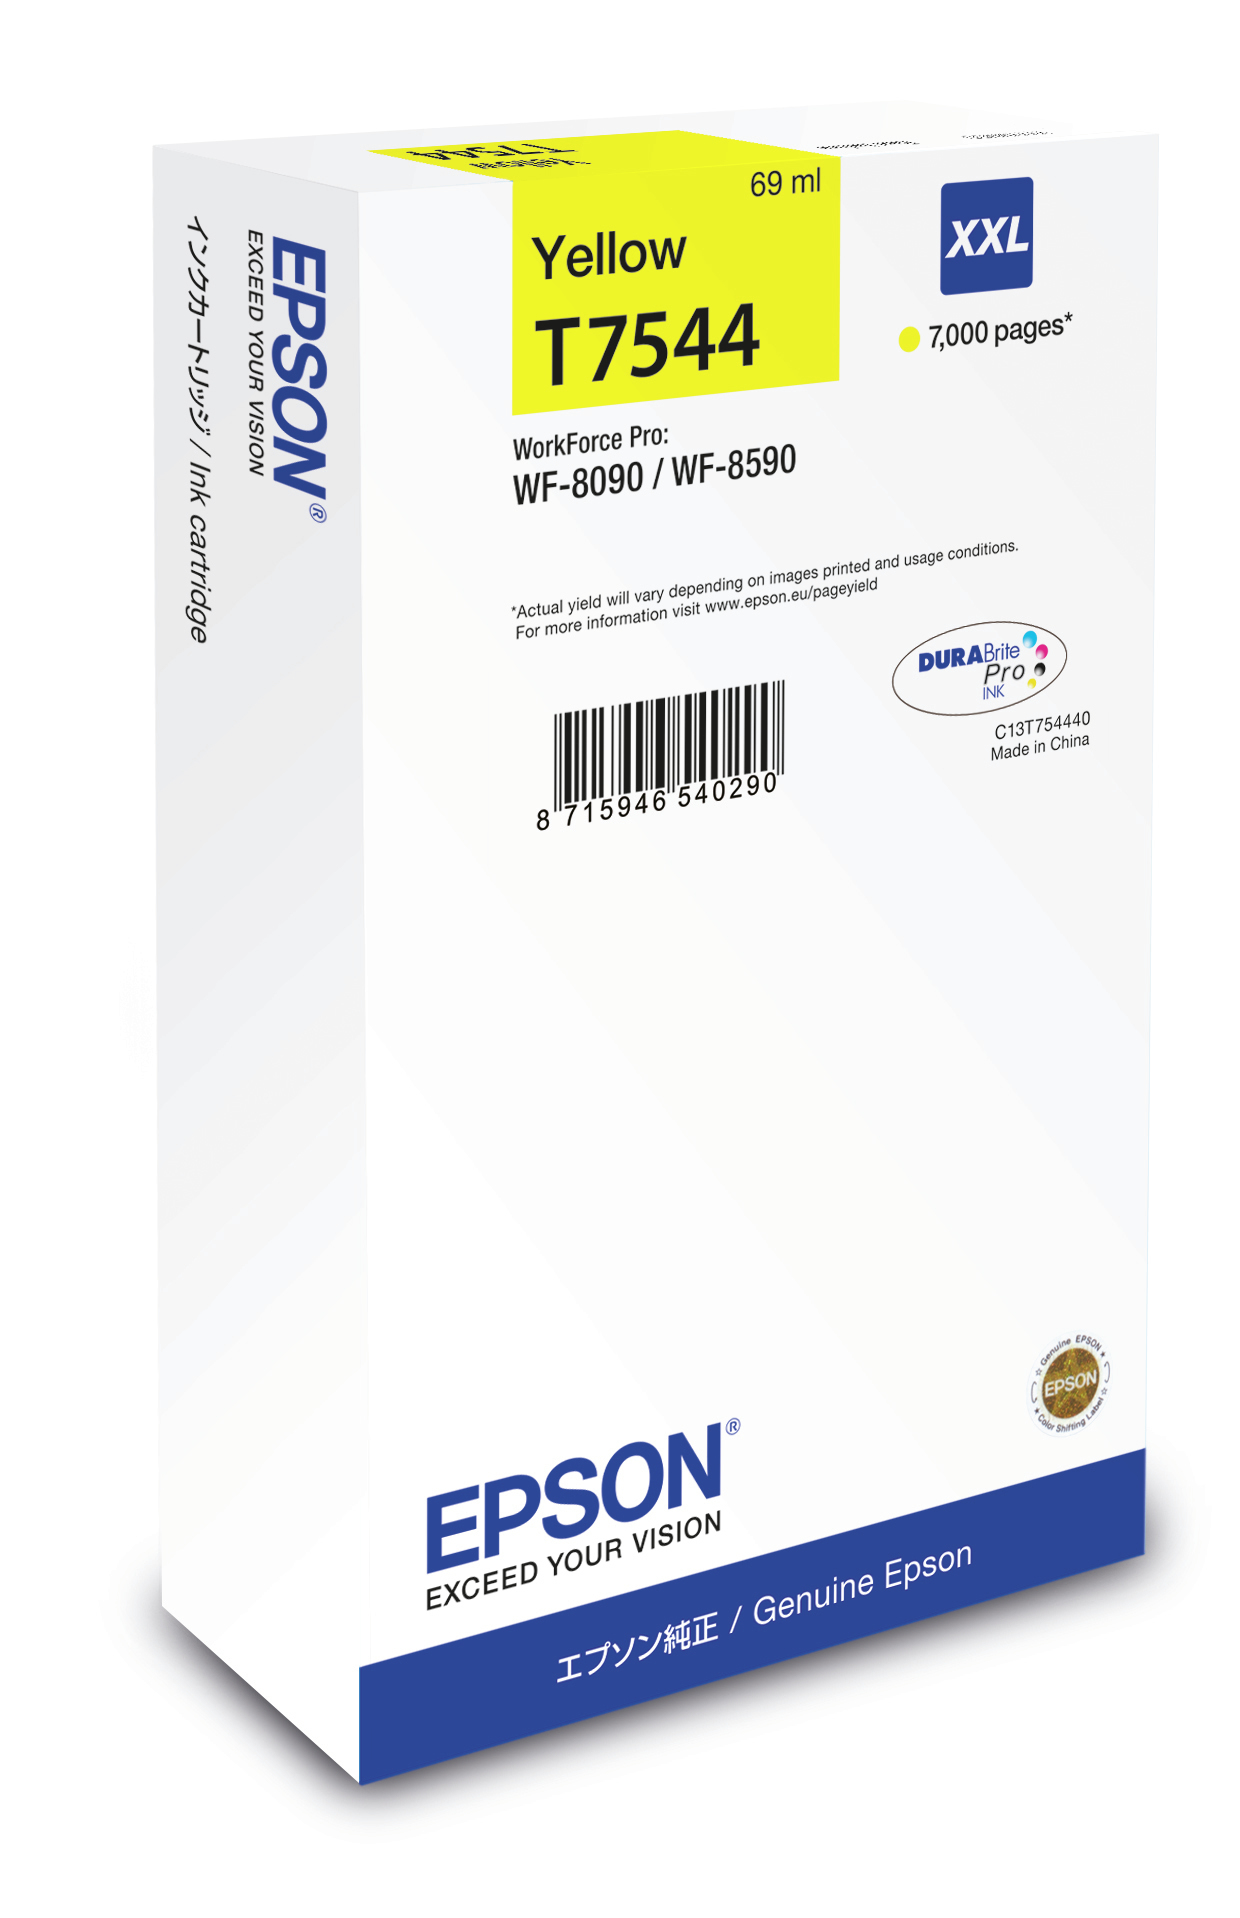 epson Wf8090/ Wf8590 Yellow Ink Cart Xxl C13t754440 - AD01